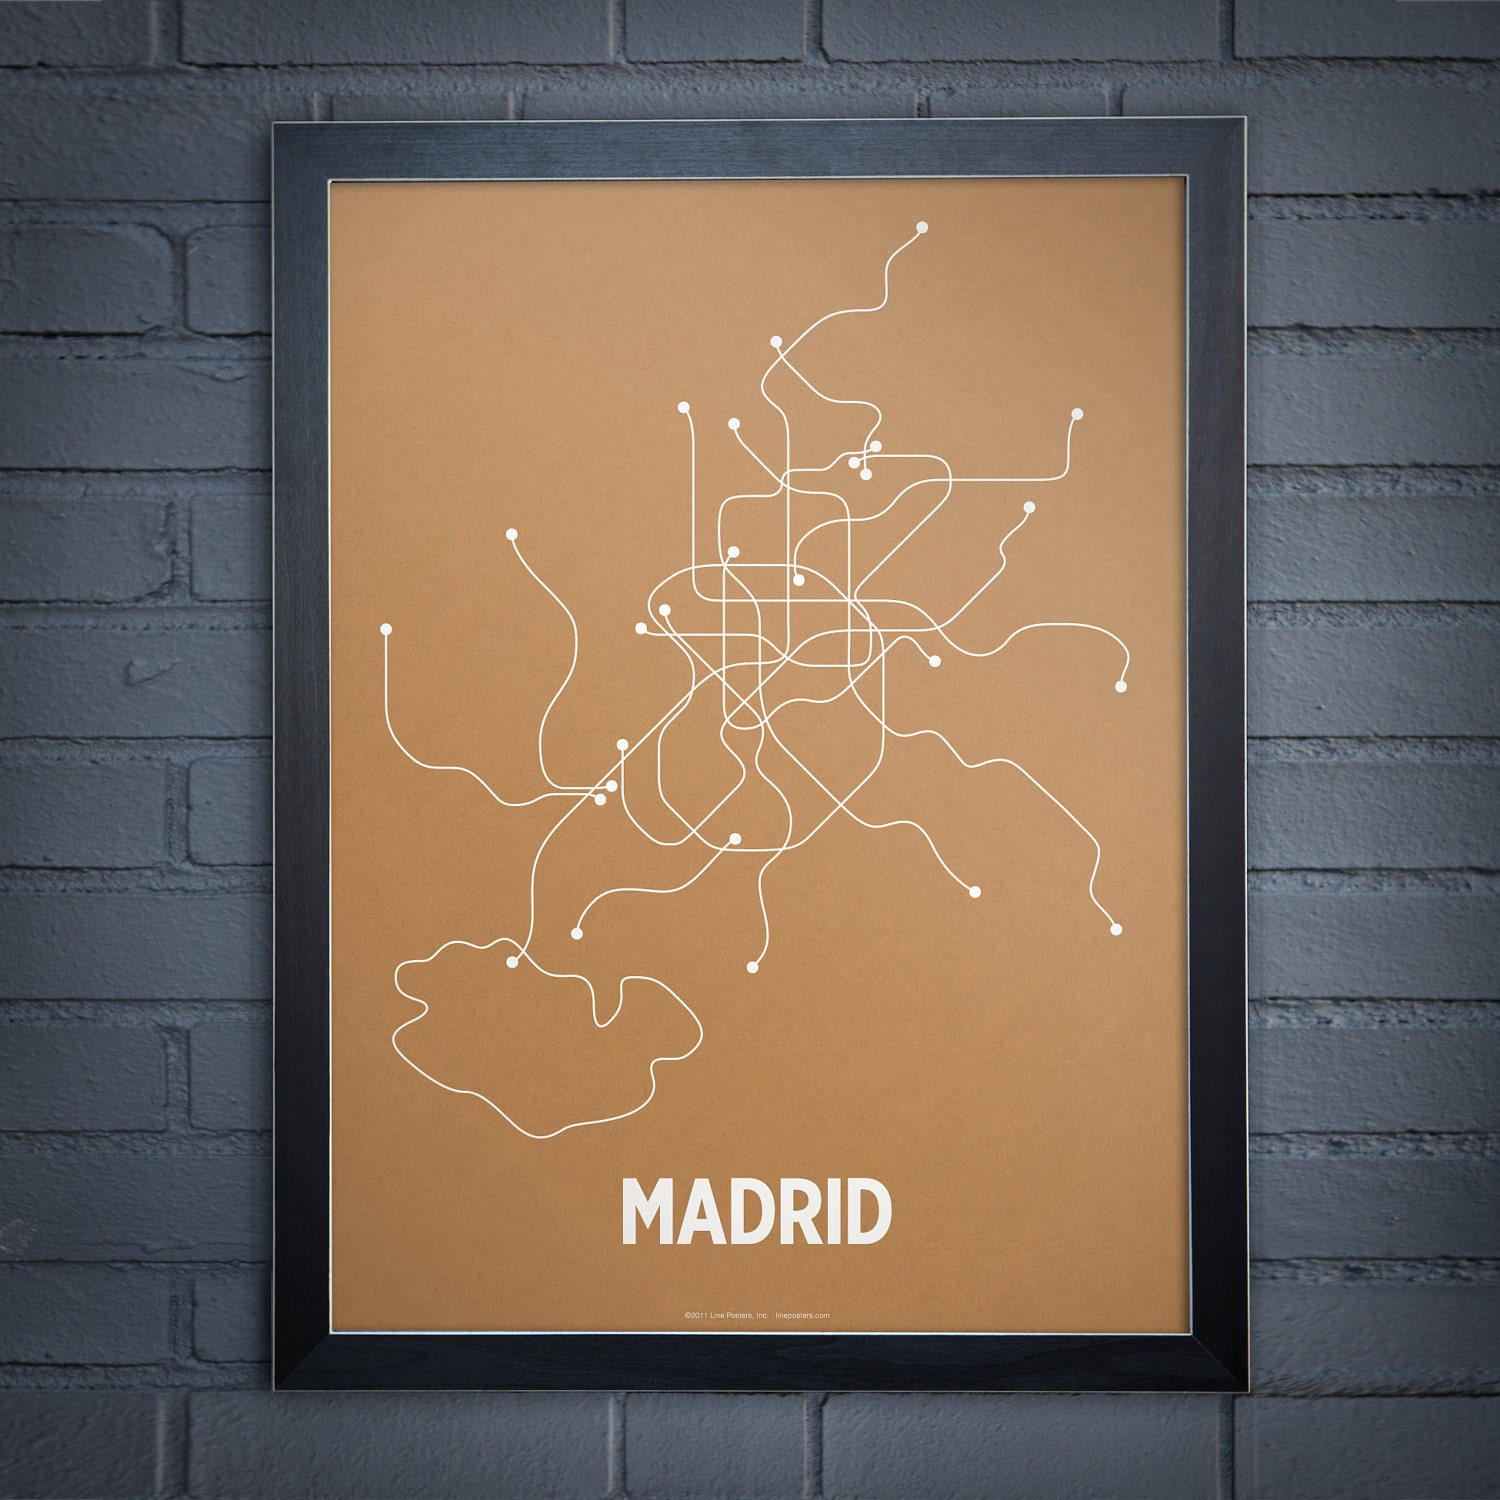 Madrid Lineposter Screen Print - Orange/Pearl White